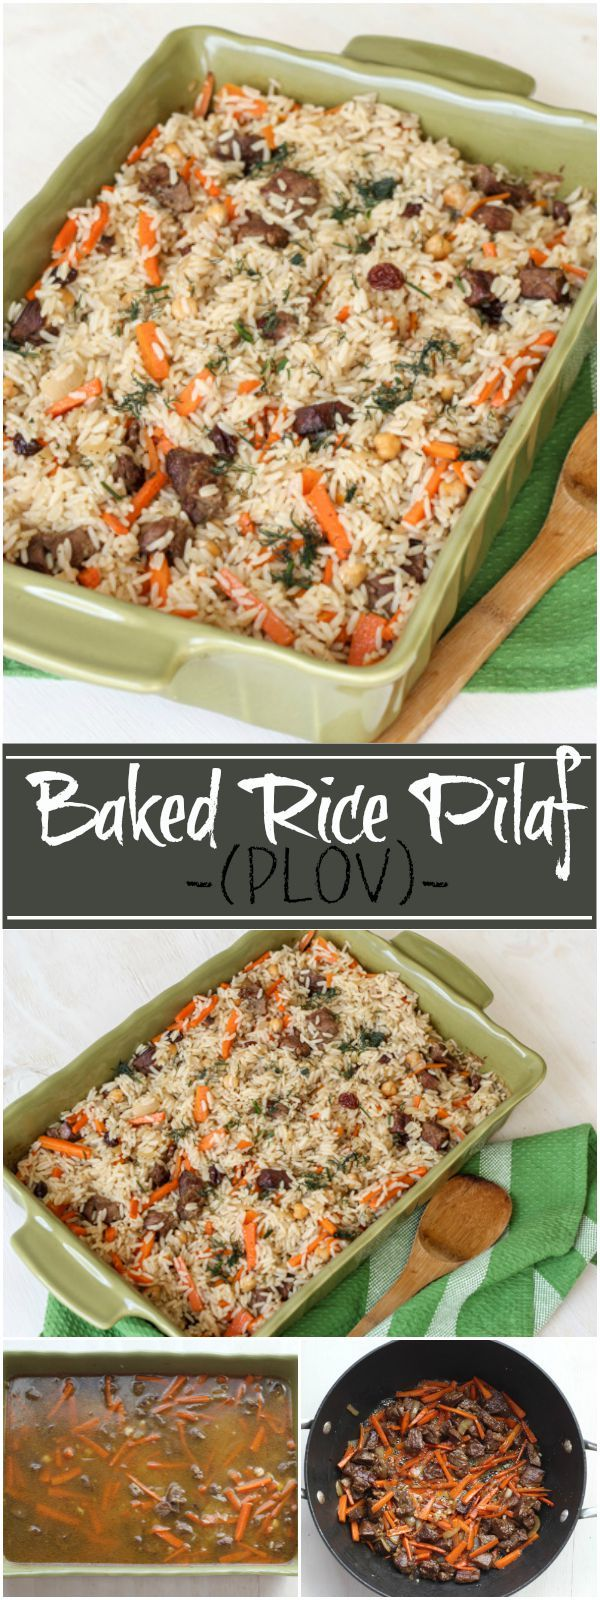 761 best russian food recipes images on pinterest russian foods baked rice pilaf plov valentinascorner russian recipesrussian foodsrussian forumfinder Image collections